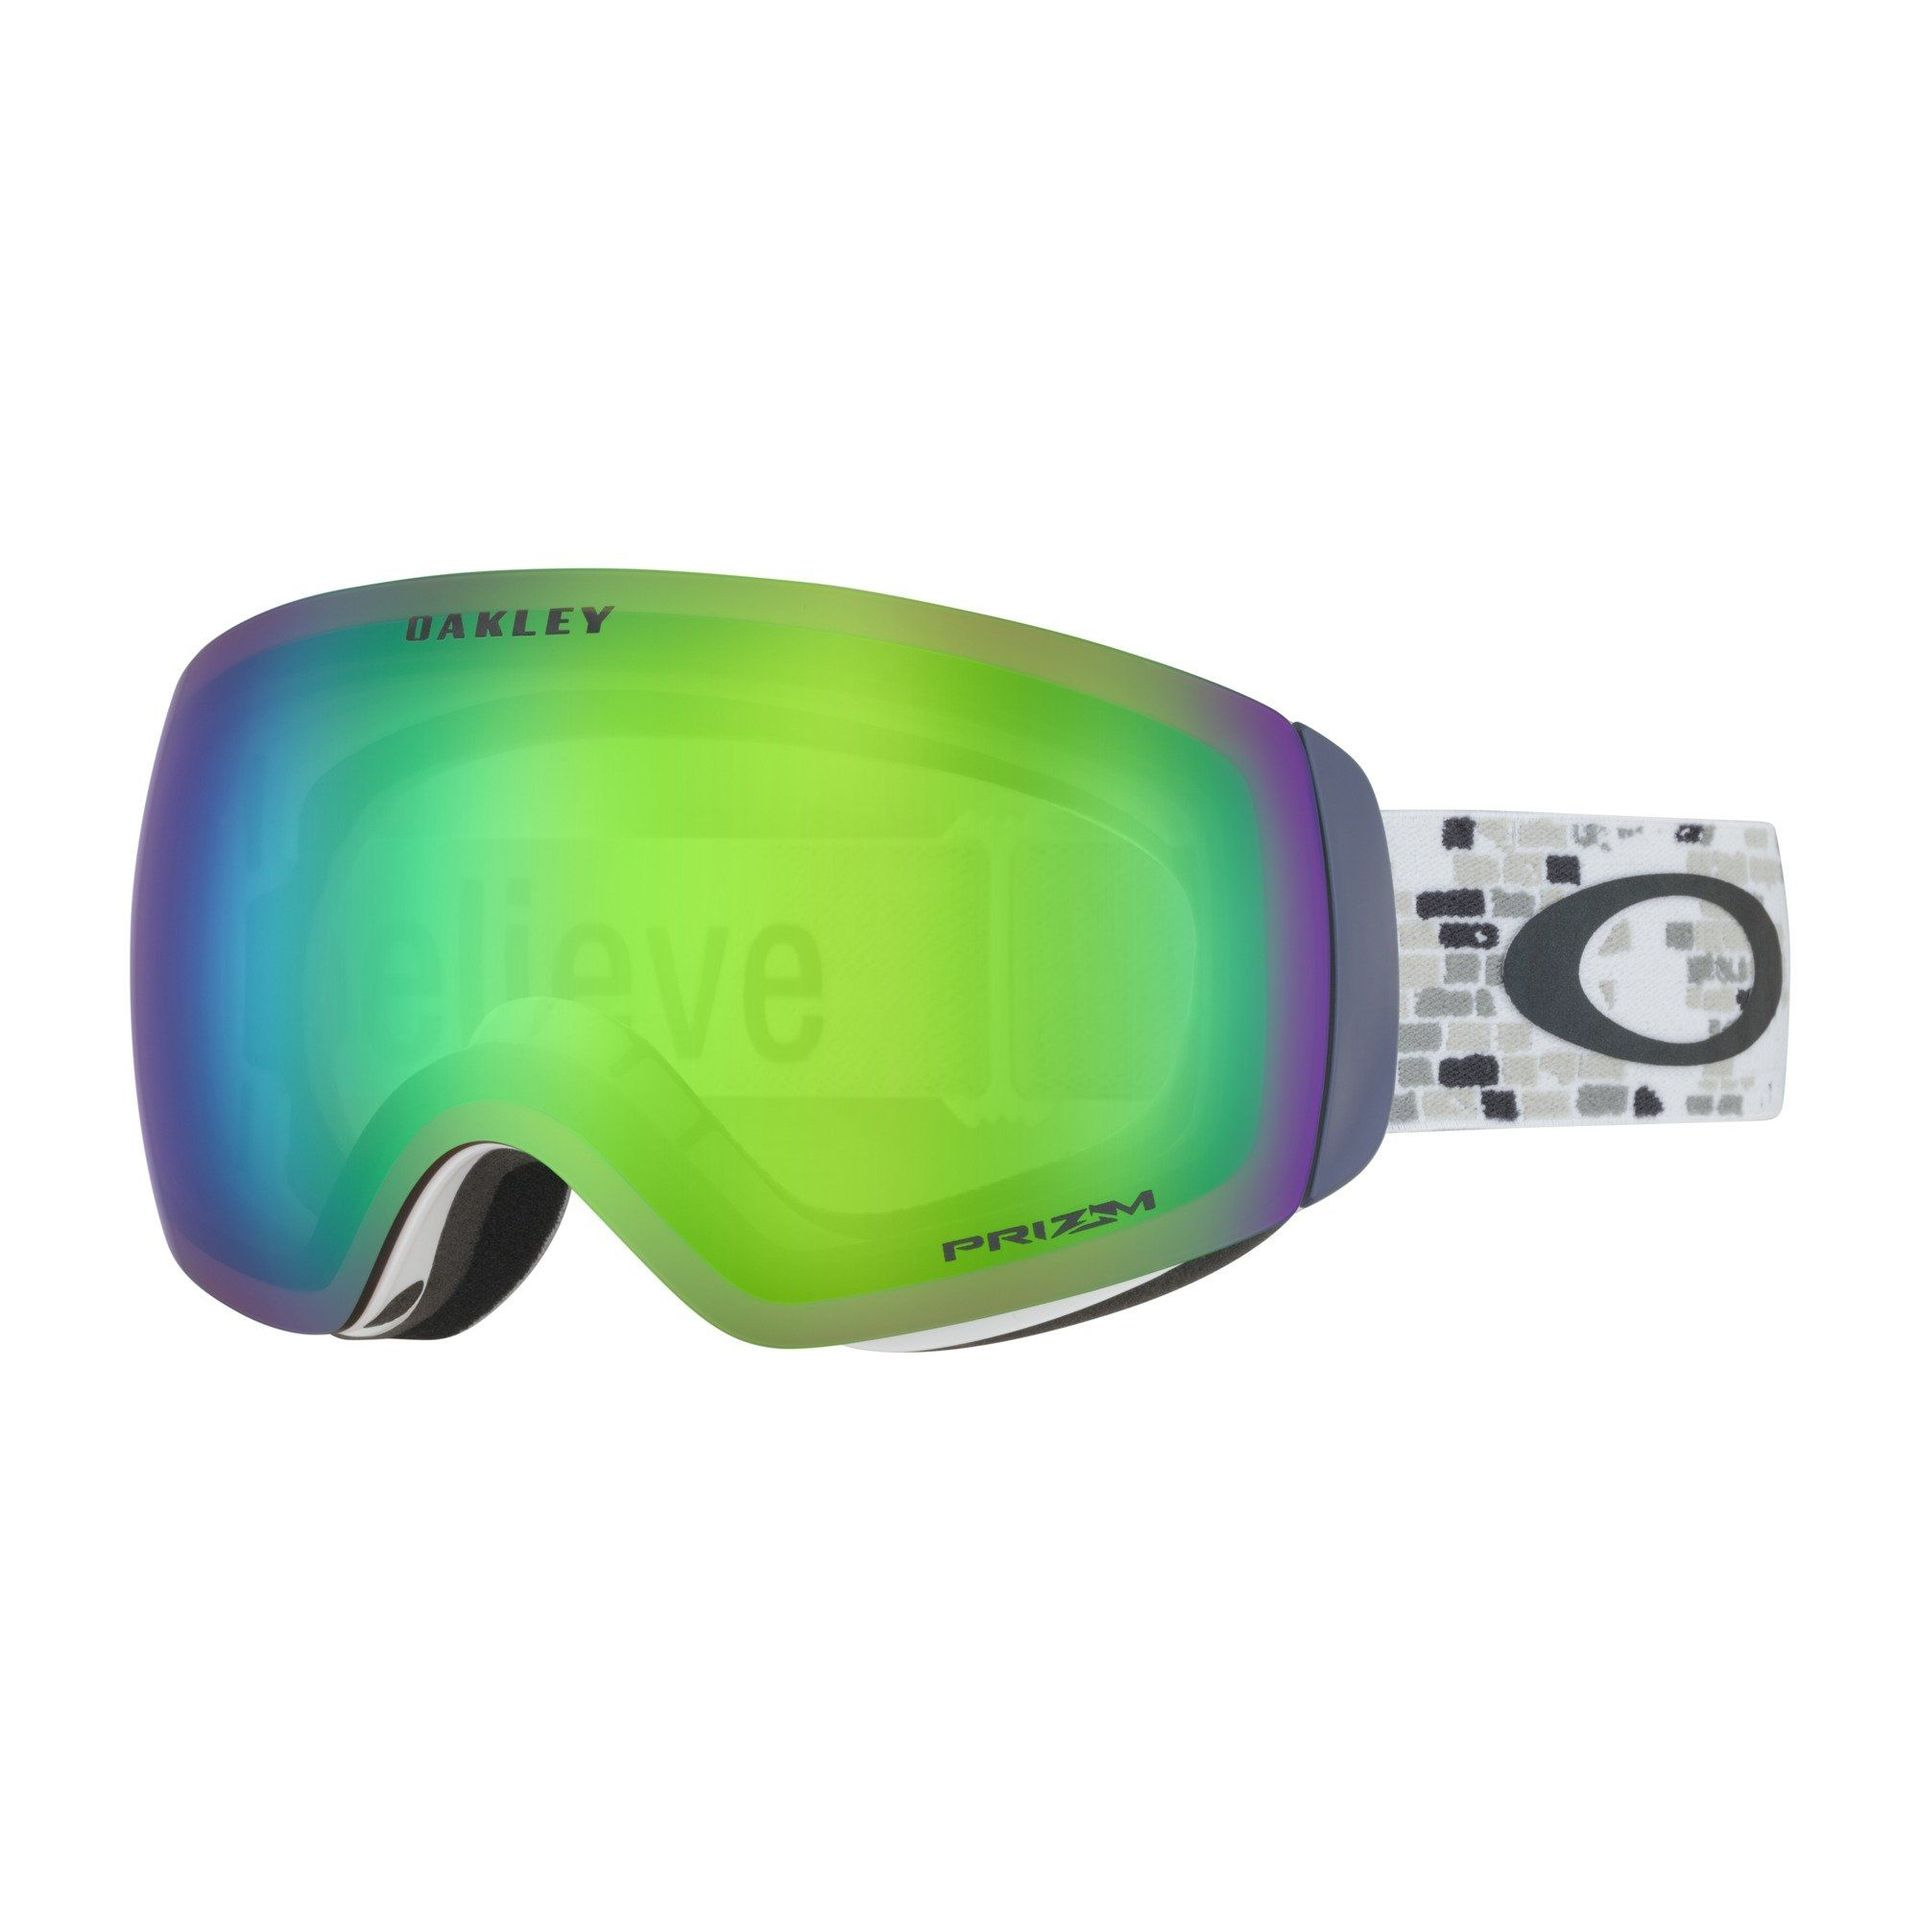 GOGLE OAKLEY FLIGHT DECK XM LINDSEY VONN BRICK WALL|PRIZM SNOW JADE IRIDIUM 1